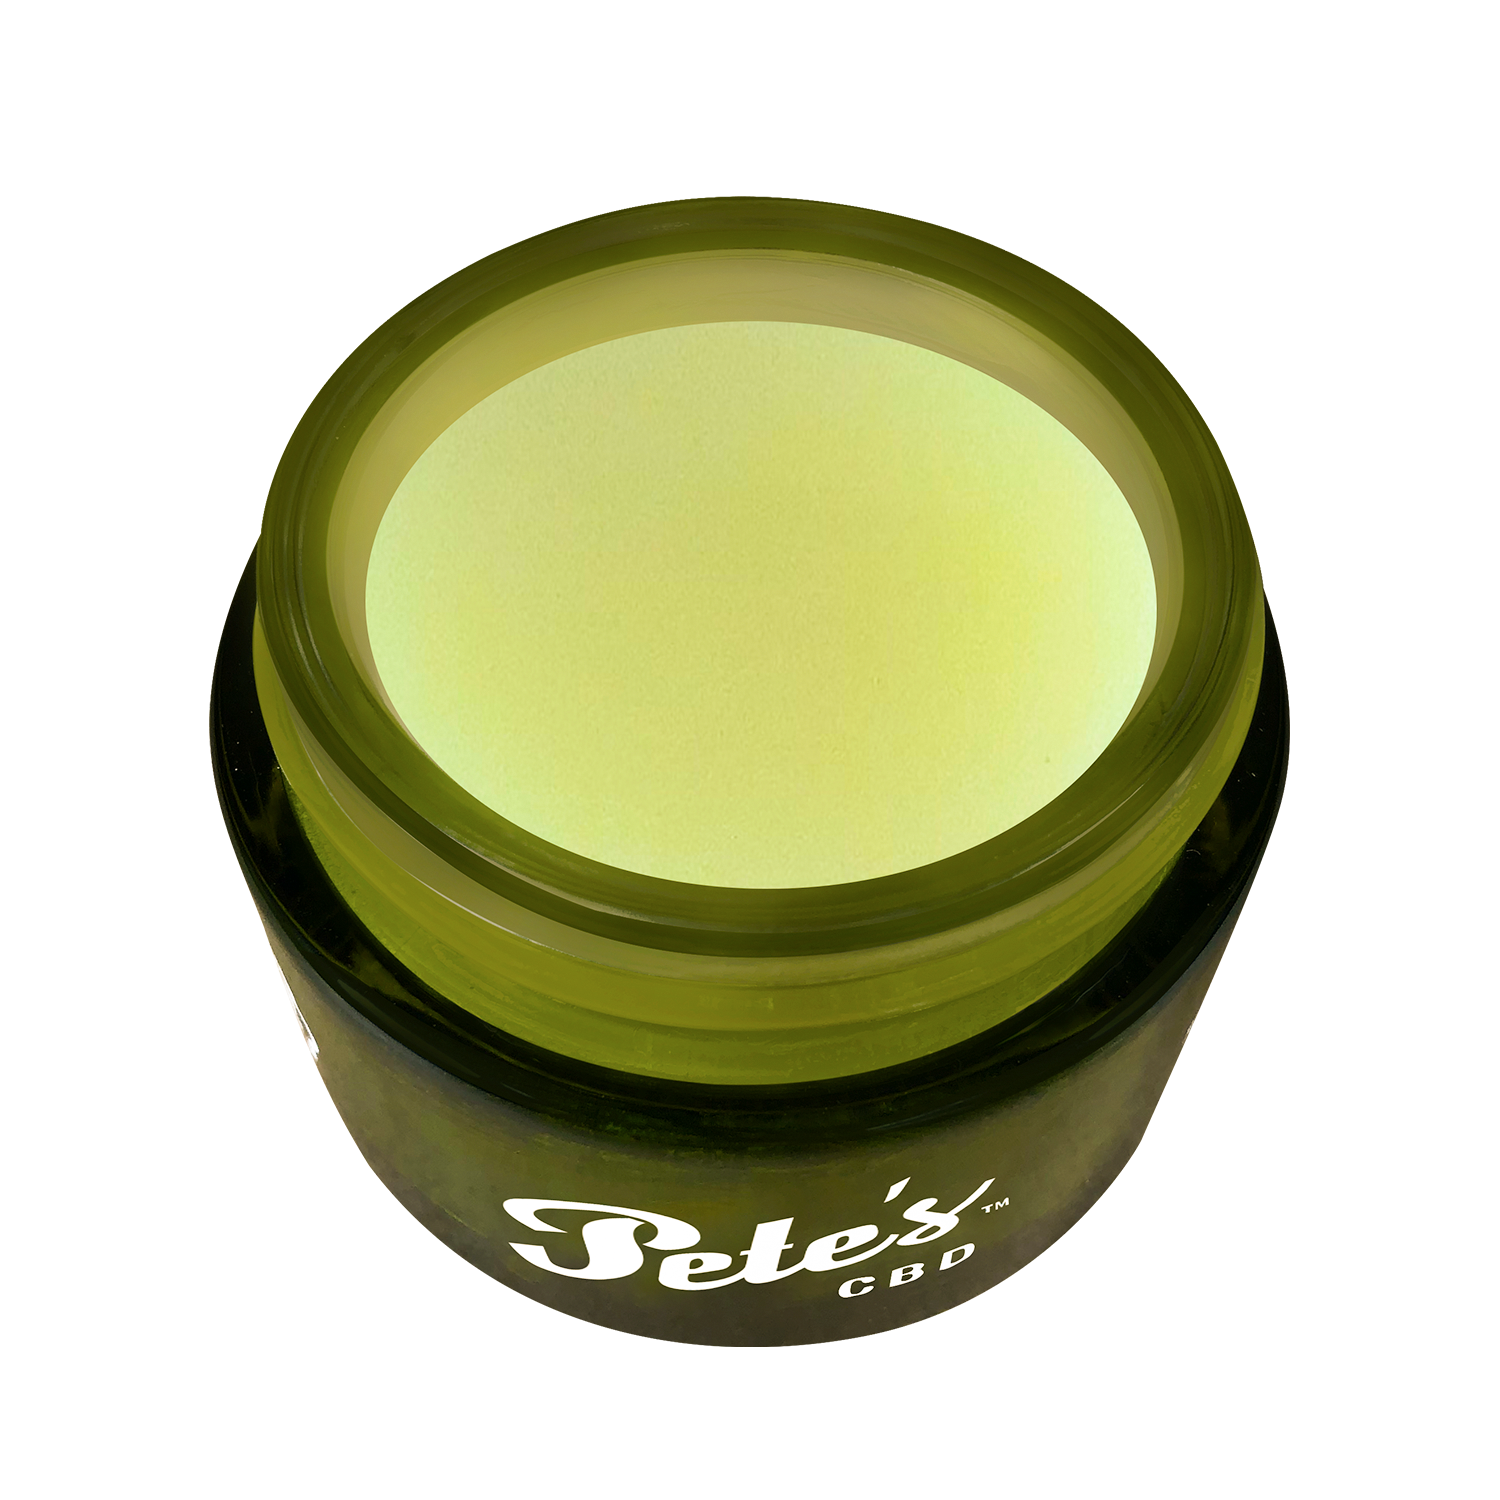 Pete's CBD | Rejuvenator 500mg Soothing Botanical Balm